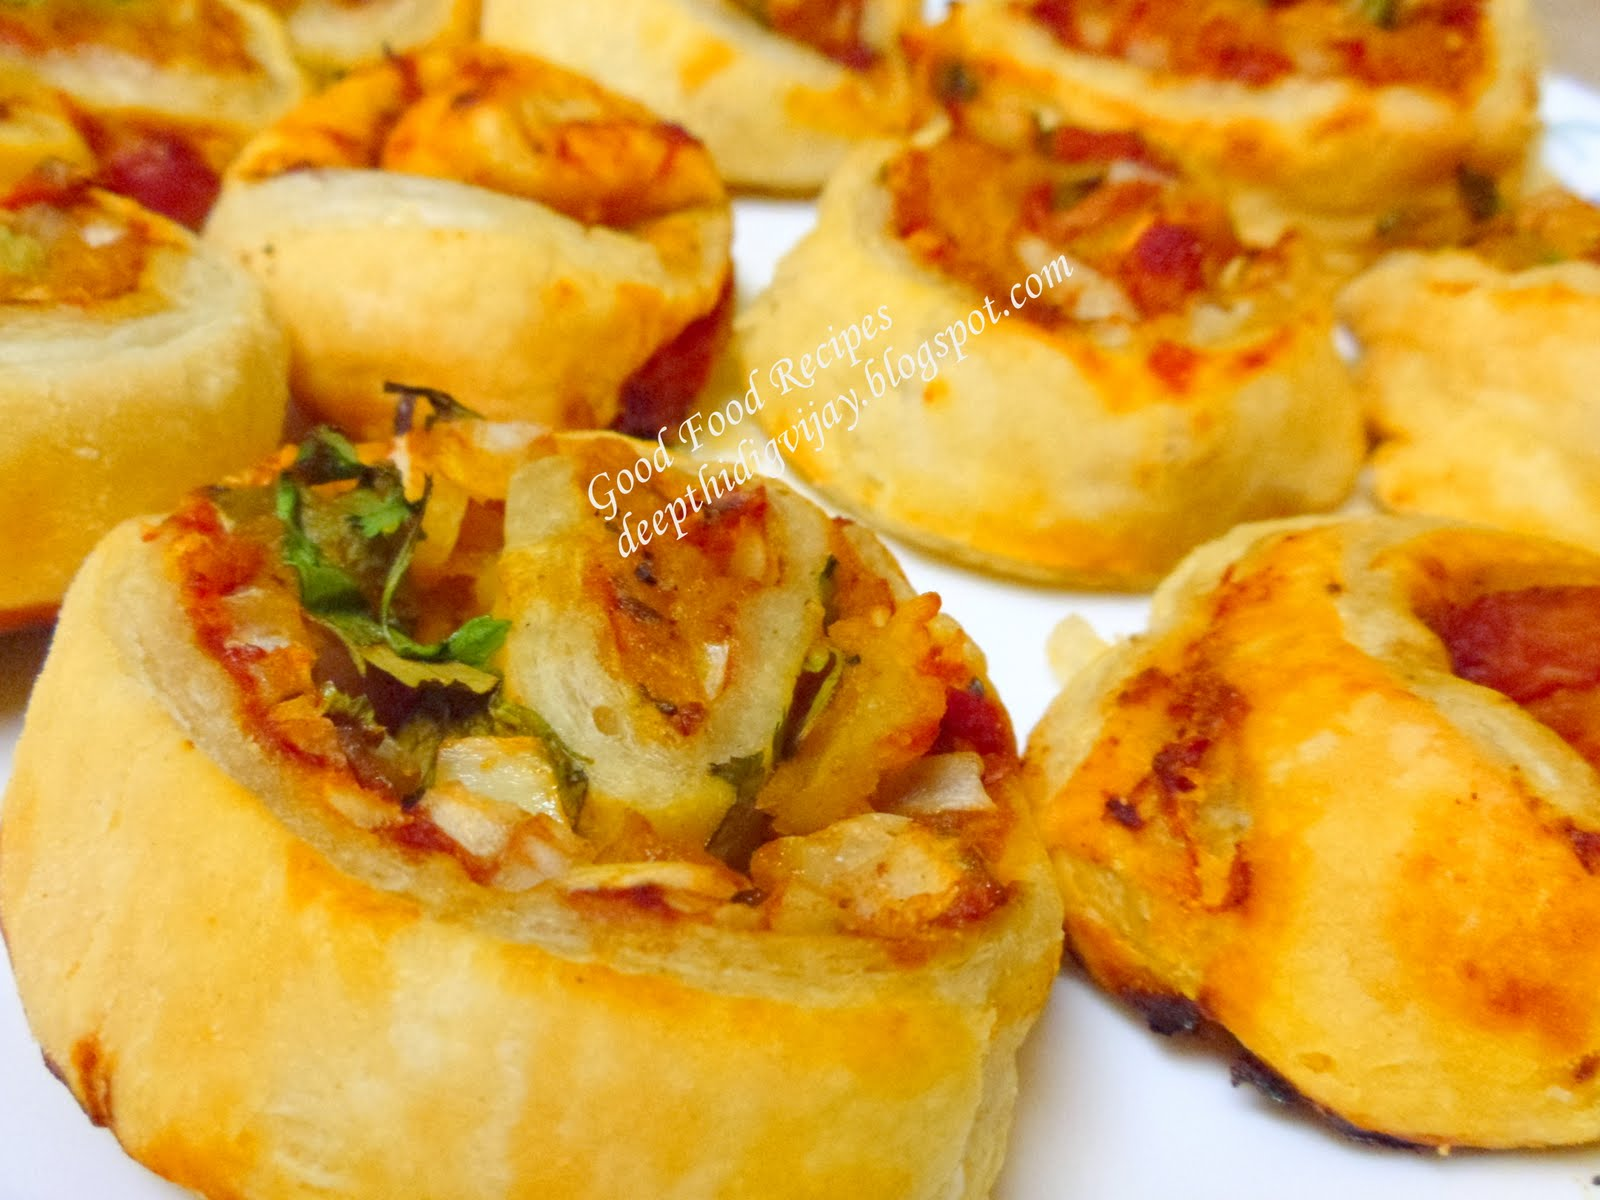 Good food recipes vegetable pastry pin wheels in indian style forumfinder Gallery